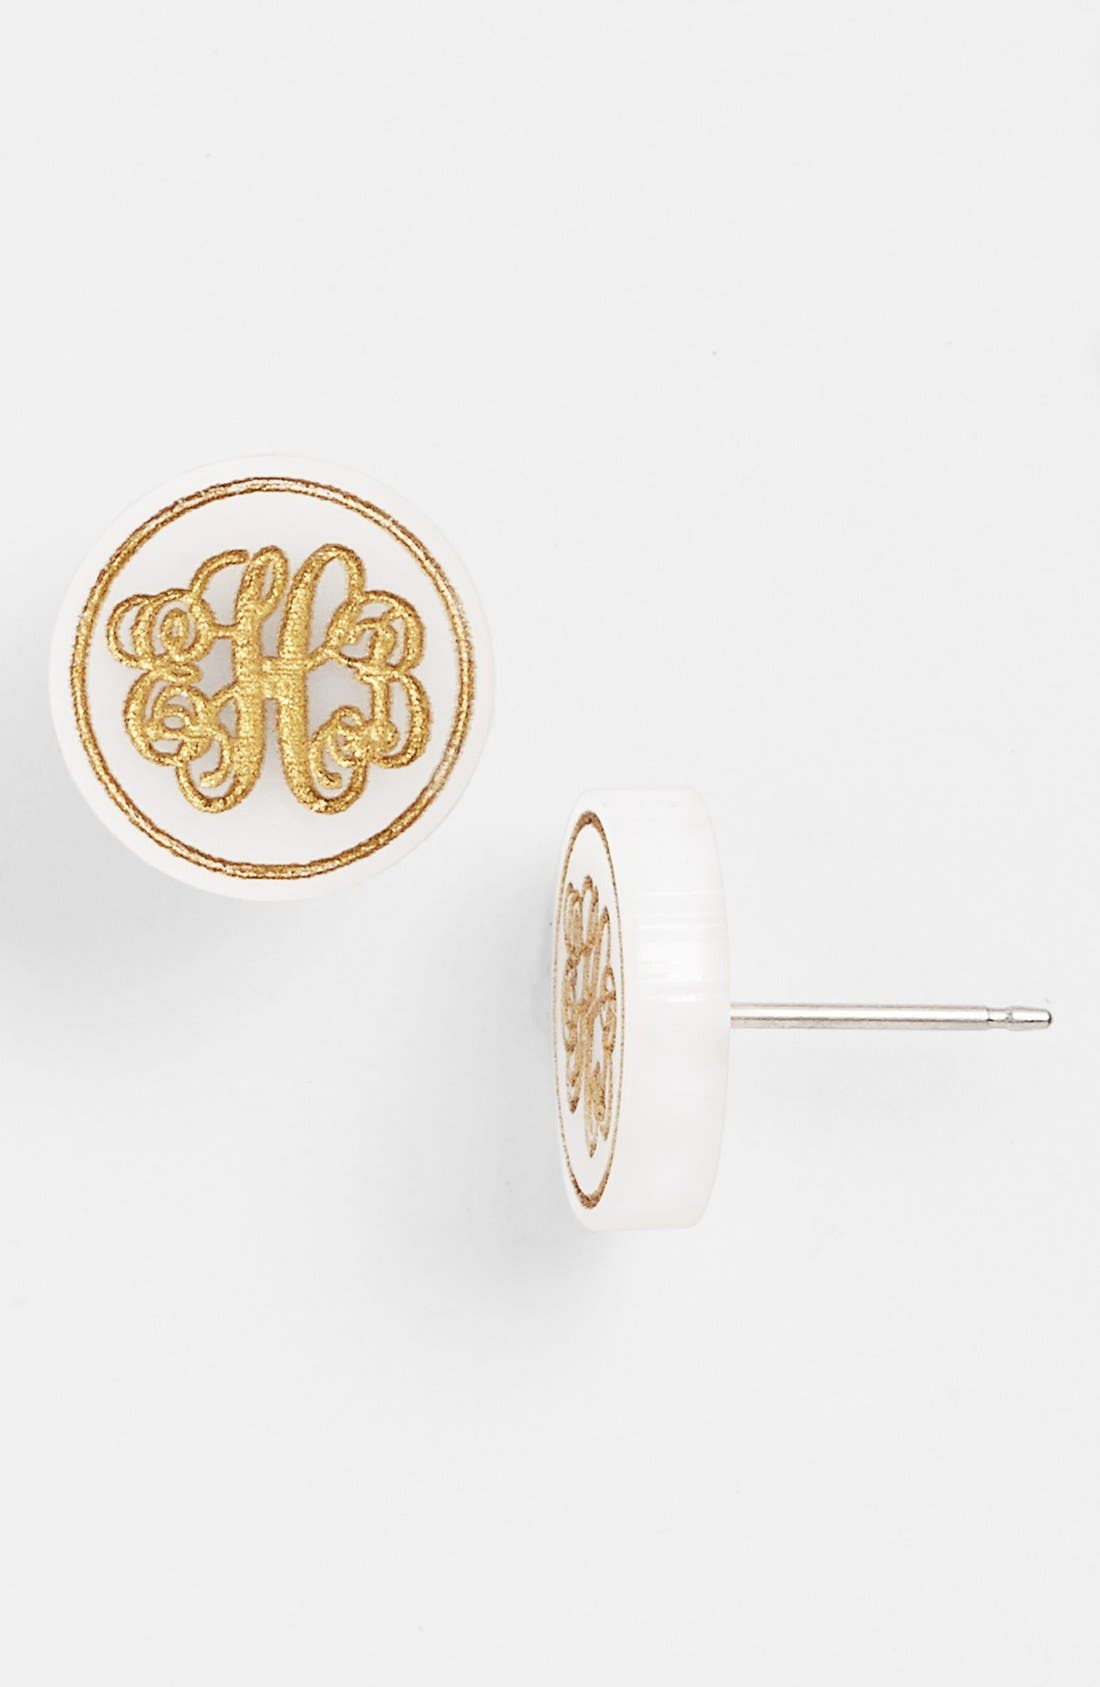 MOON AND LOLA,                             'Chelsea' Small Personalized Monogram Stud Earrings,                             Main thumbnail 1, color,                             SNOW/ GOLD